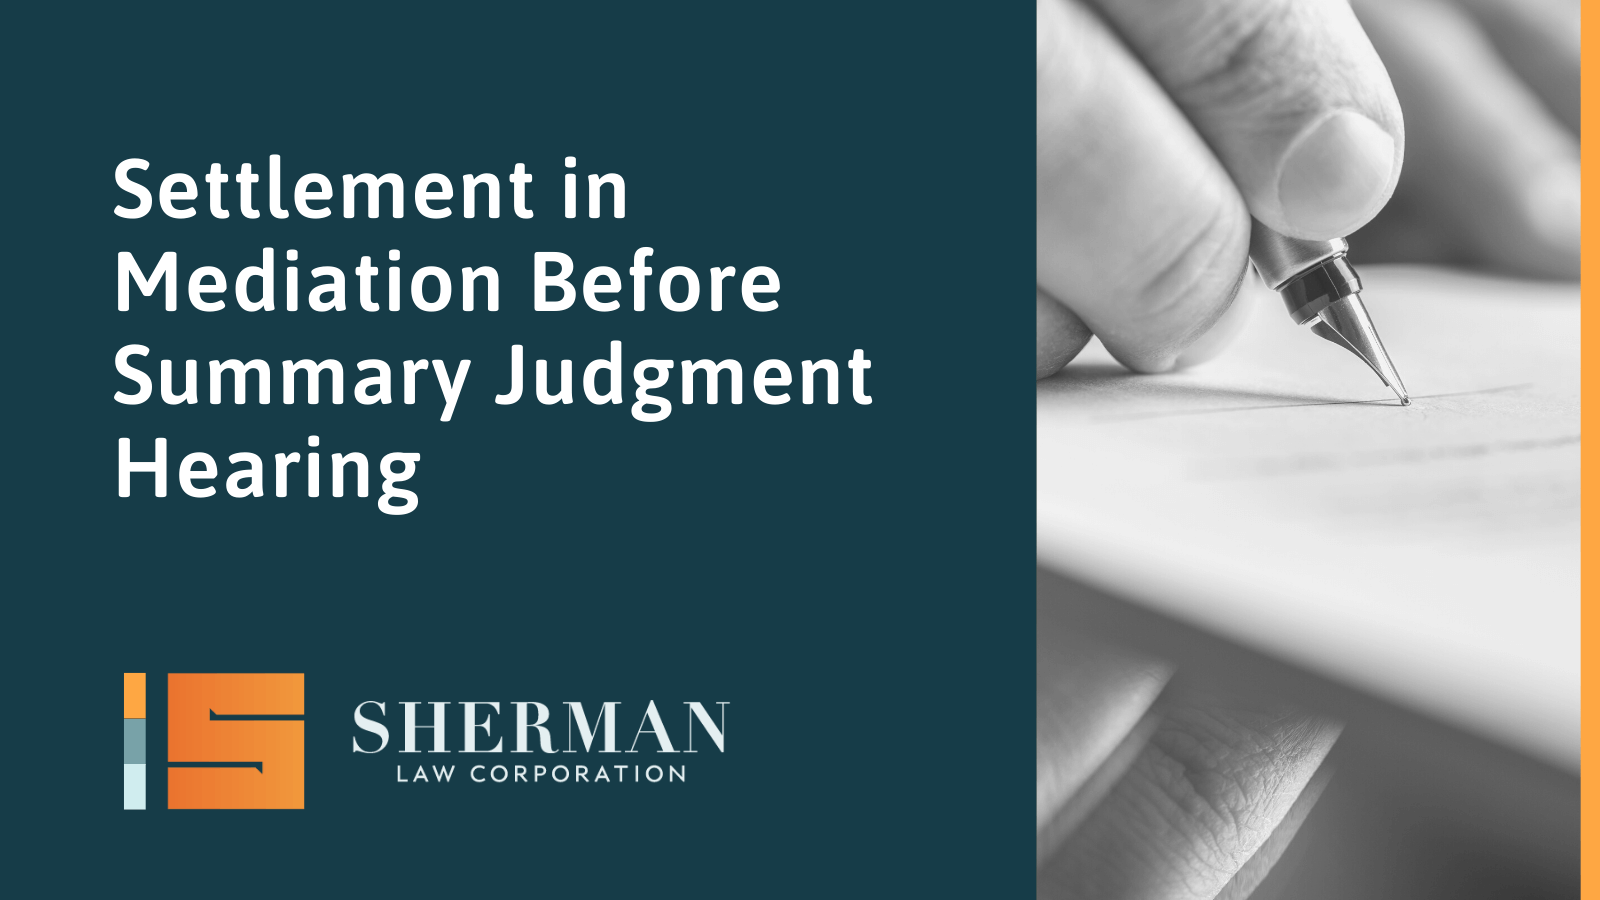 Settlement in Mediation Before Summary Judgment Hearing- sherman law corporation